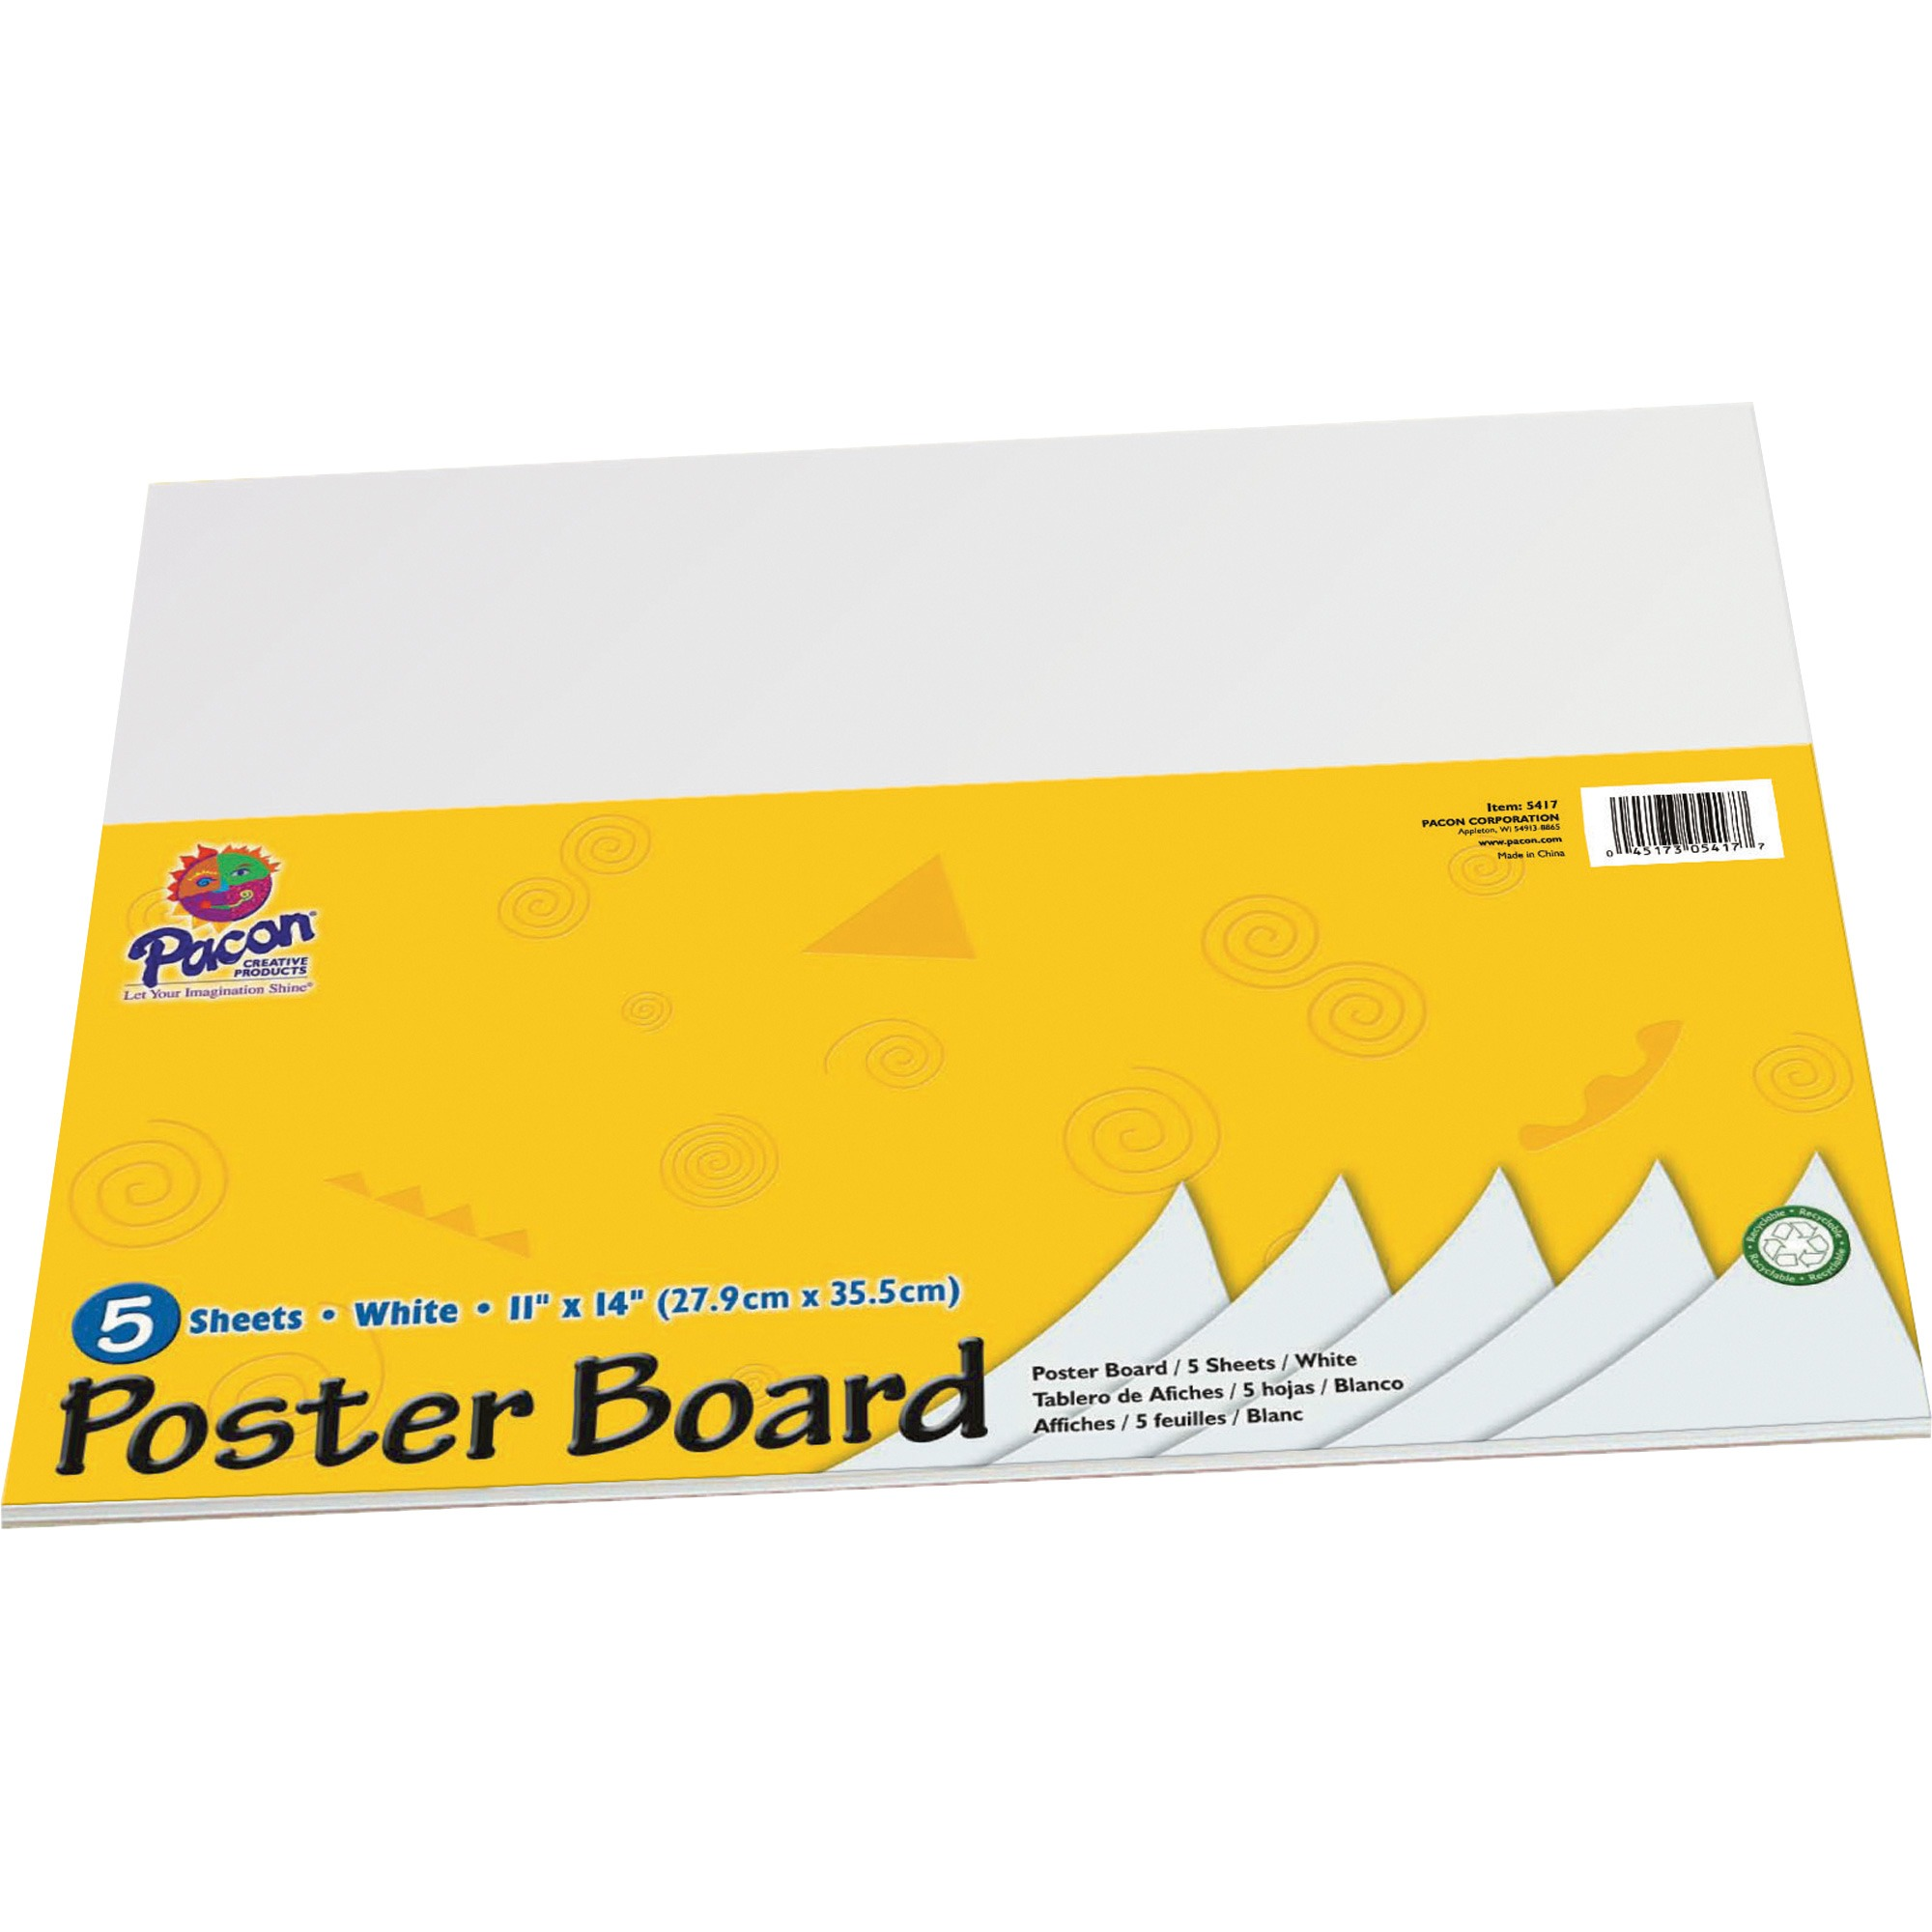 "(2 Pack) UCreate Poster Board, 11"" x 14"", White Poster Paper, 5-Sheets"